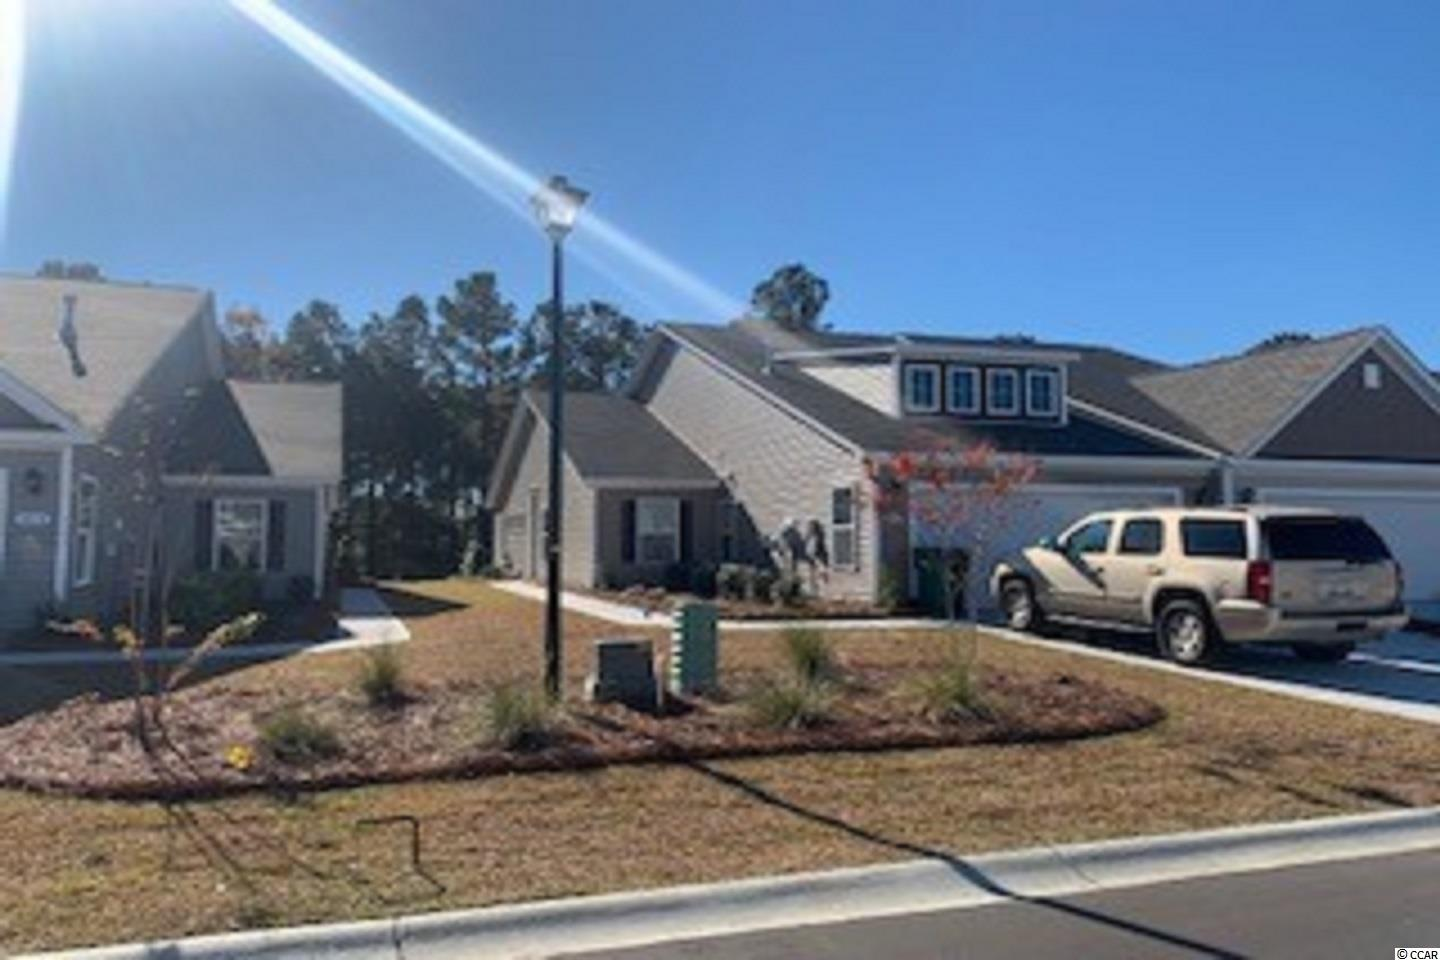 """A rare opportunity of a duplex being offered in Carolina Forest that also features an attached two-car garage! Enjoy the laid back coastal lifestyle where all of your exterior maintenance is taken care of. Upon entry you are greeted with a very open layout and high vaulted ceilings. The split bedroom floor plan offers privacy when you have guests visiting you at the beach, along with functionality. This home will also have a spacious rear covered porch that is great for morning coffee! Granite countertops, tankless water heater, 36"""" painted cabinetry, and stainless Whirlpool appliances with a gas range all included. This is America's Smart Home! Ask an agent today about our industry leading smart home package that is standard in every home.  *Photos are of a similar Tuscan home. (Home and community information, including pricing, included features, terms, availability and amenities, are subject to change prior to sale at any time without notice or obligation.  Square footages are approximate.  Pictures, photographs, colors, features, and sizes are for illustration purposes only and will vary from the homes as built.  Equal housing opportunity builder.)"""